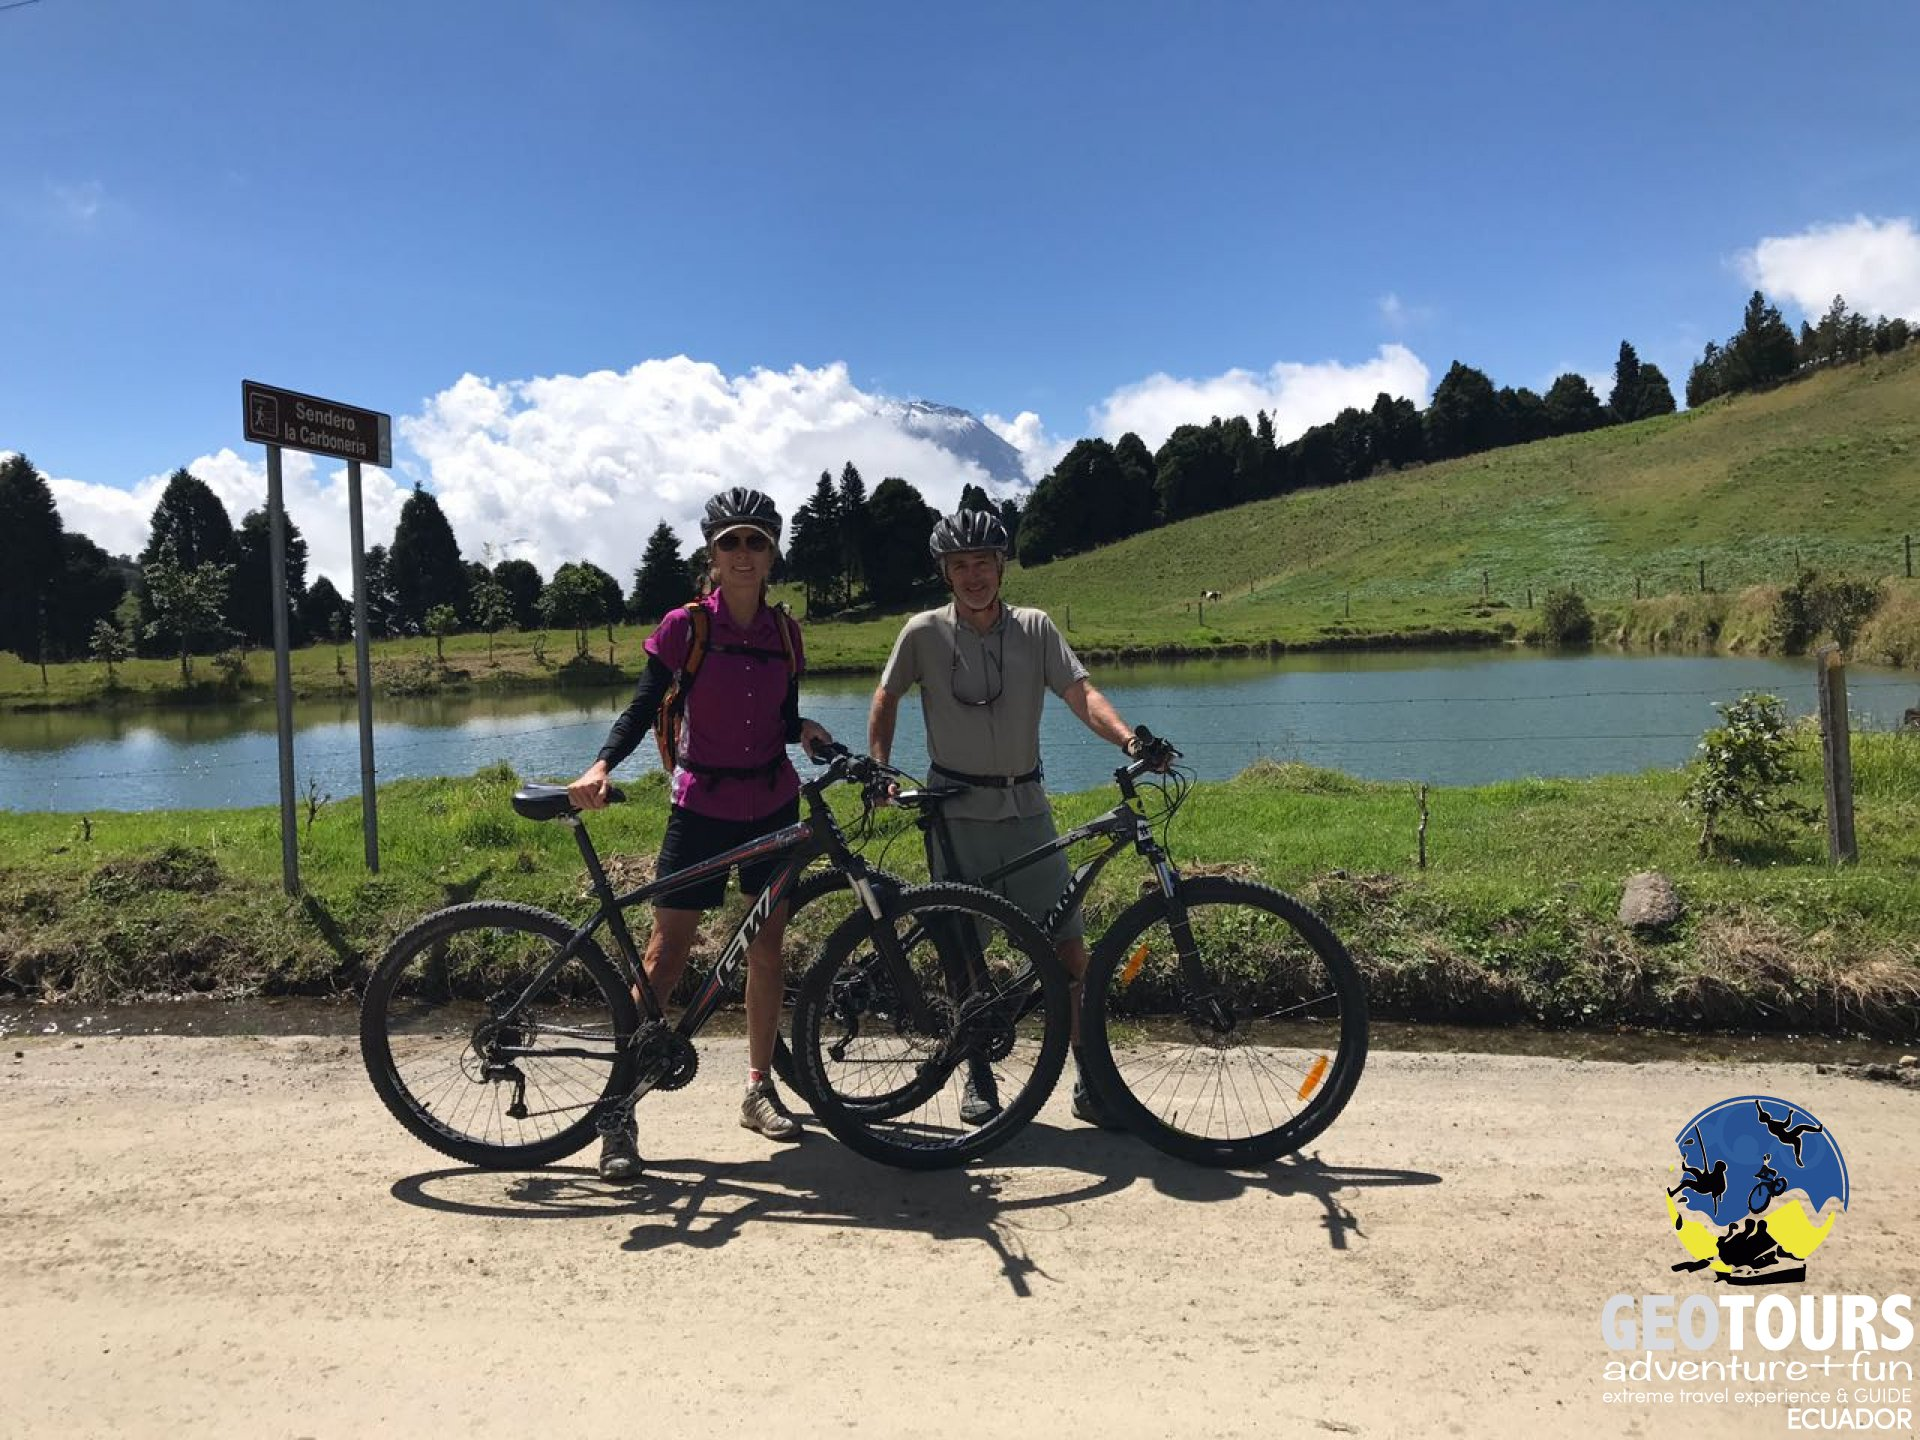 Countryside Biking Tour – Full Day Tour